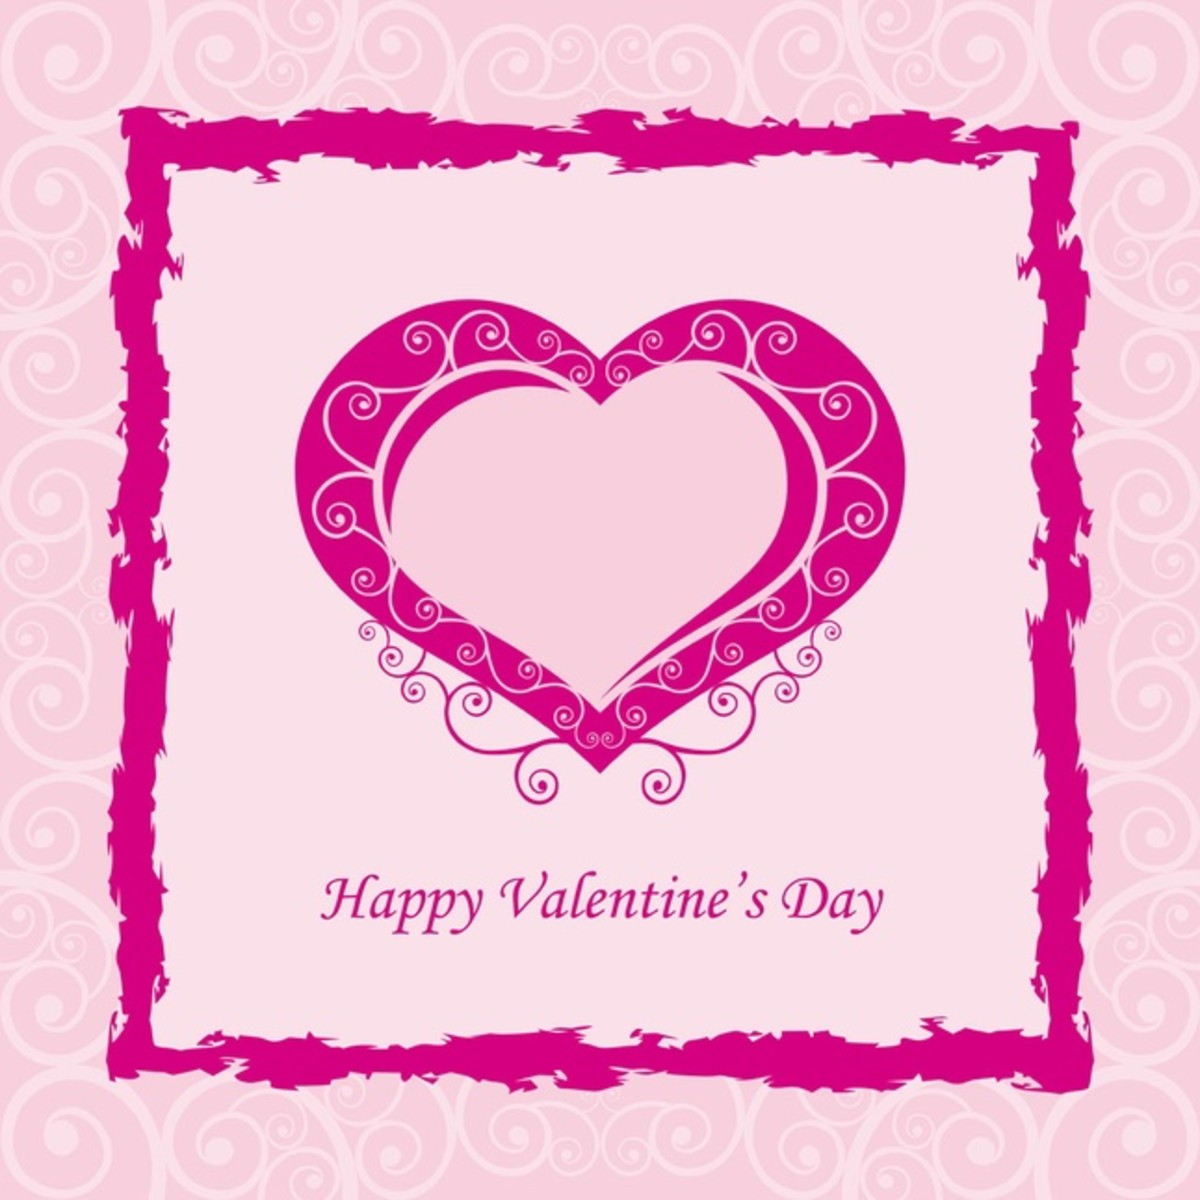 Hot Pink Happy Valentine's Day Image